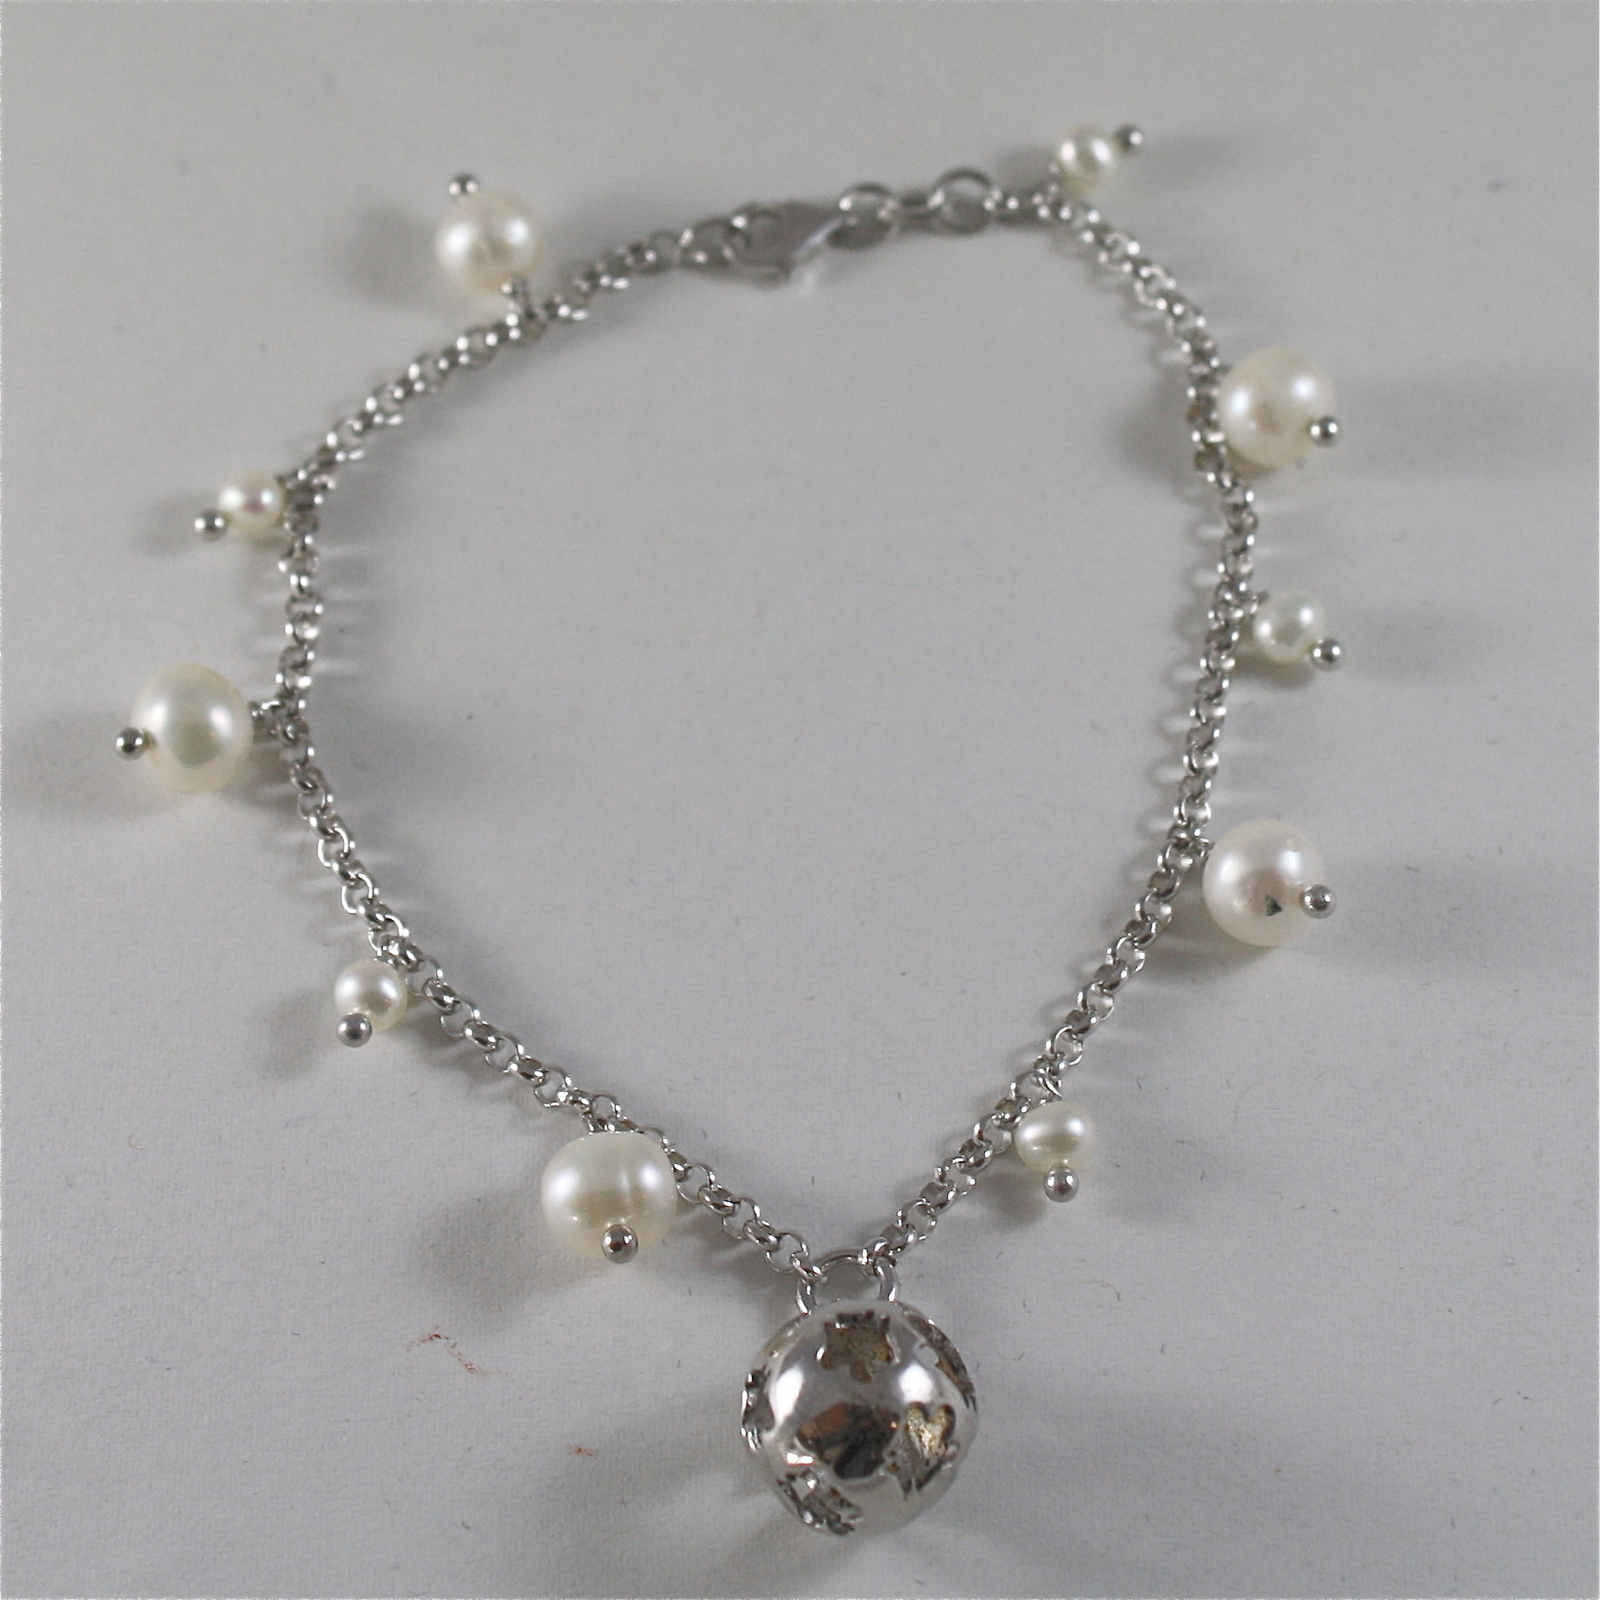 925 RODIUM SILVER BRACELET WITH WHITE FW PEARLS & BALL WITH ANGEL, MADE IN ITALY